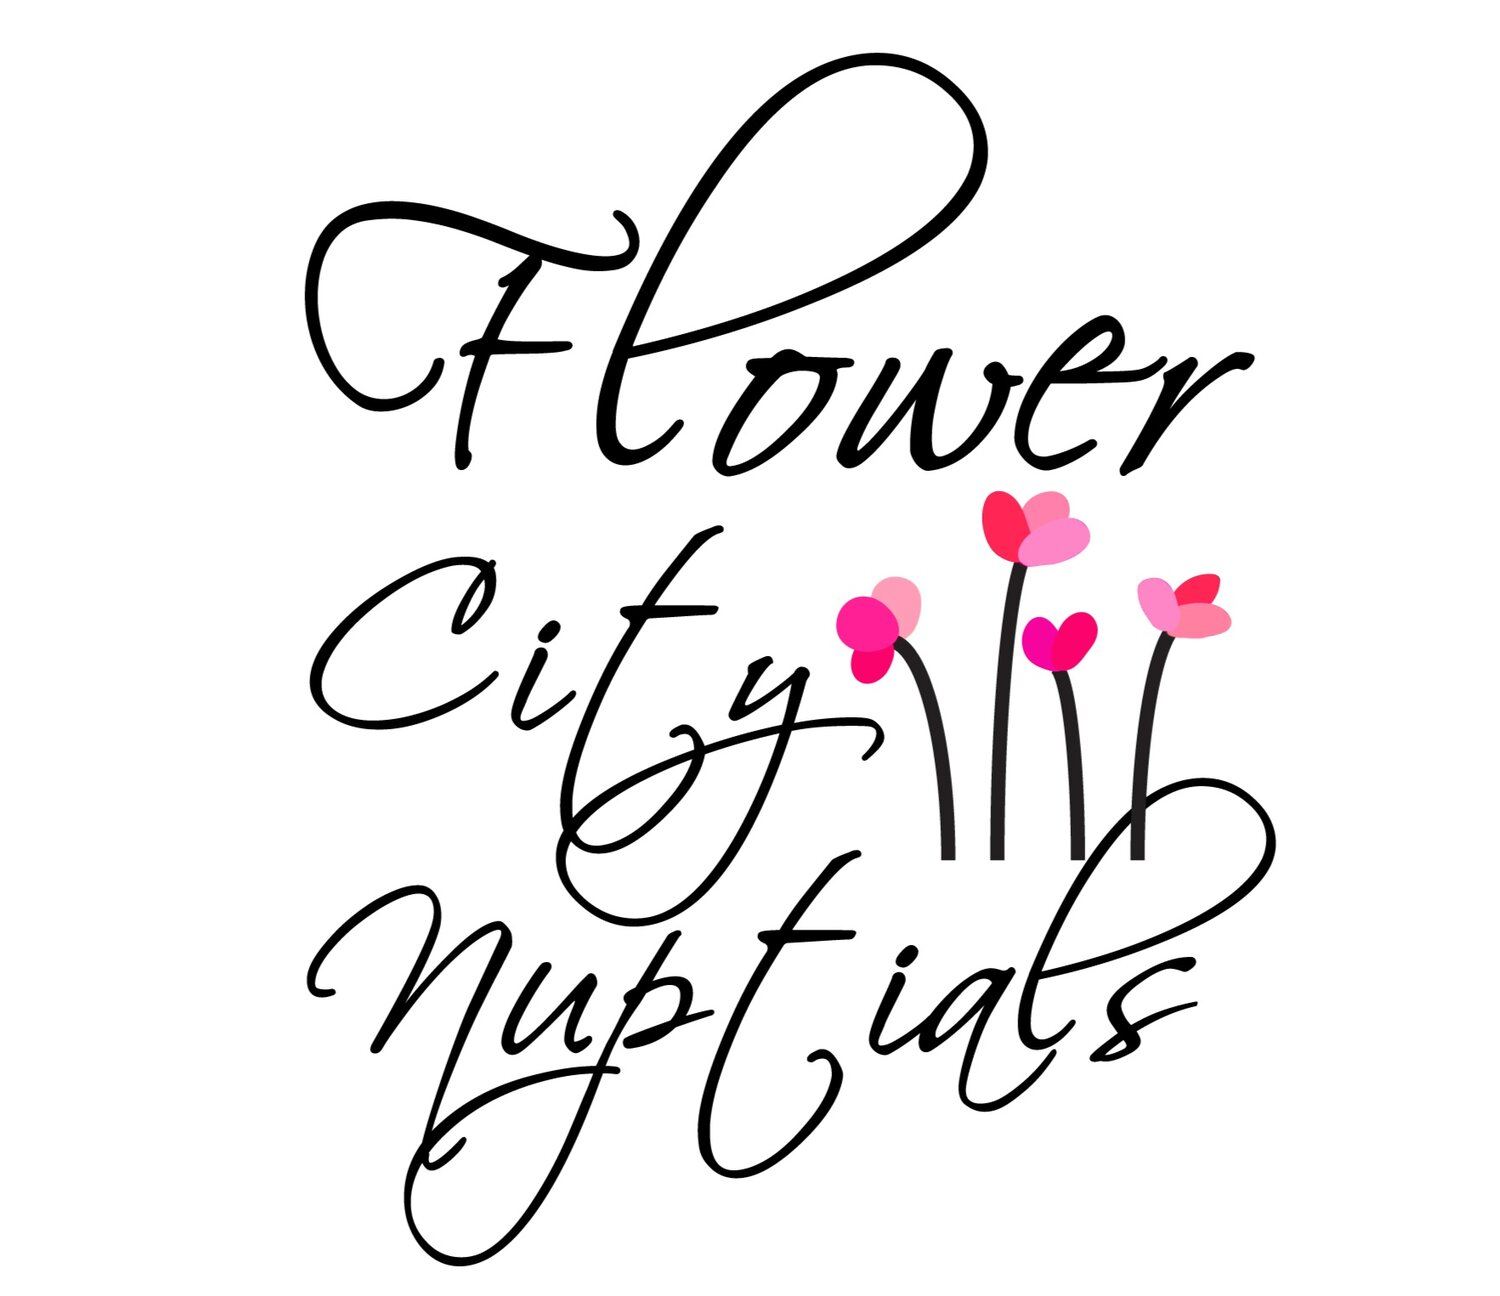 Flower City Nuptials